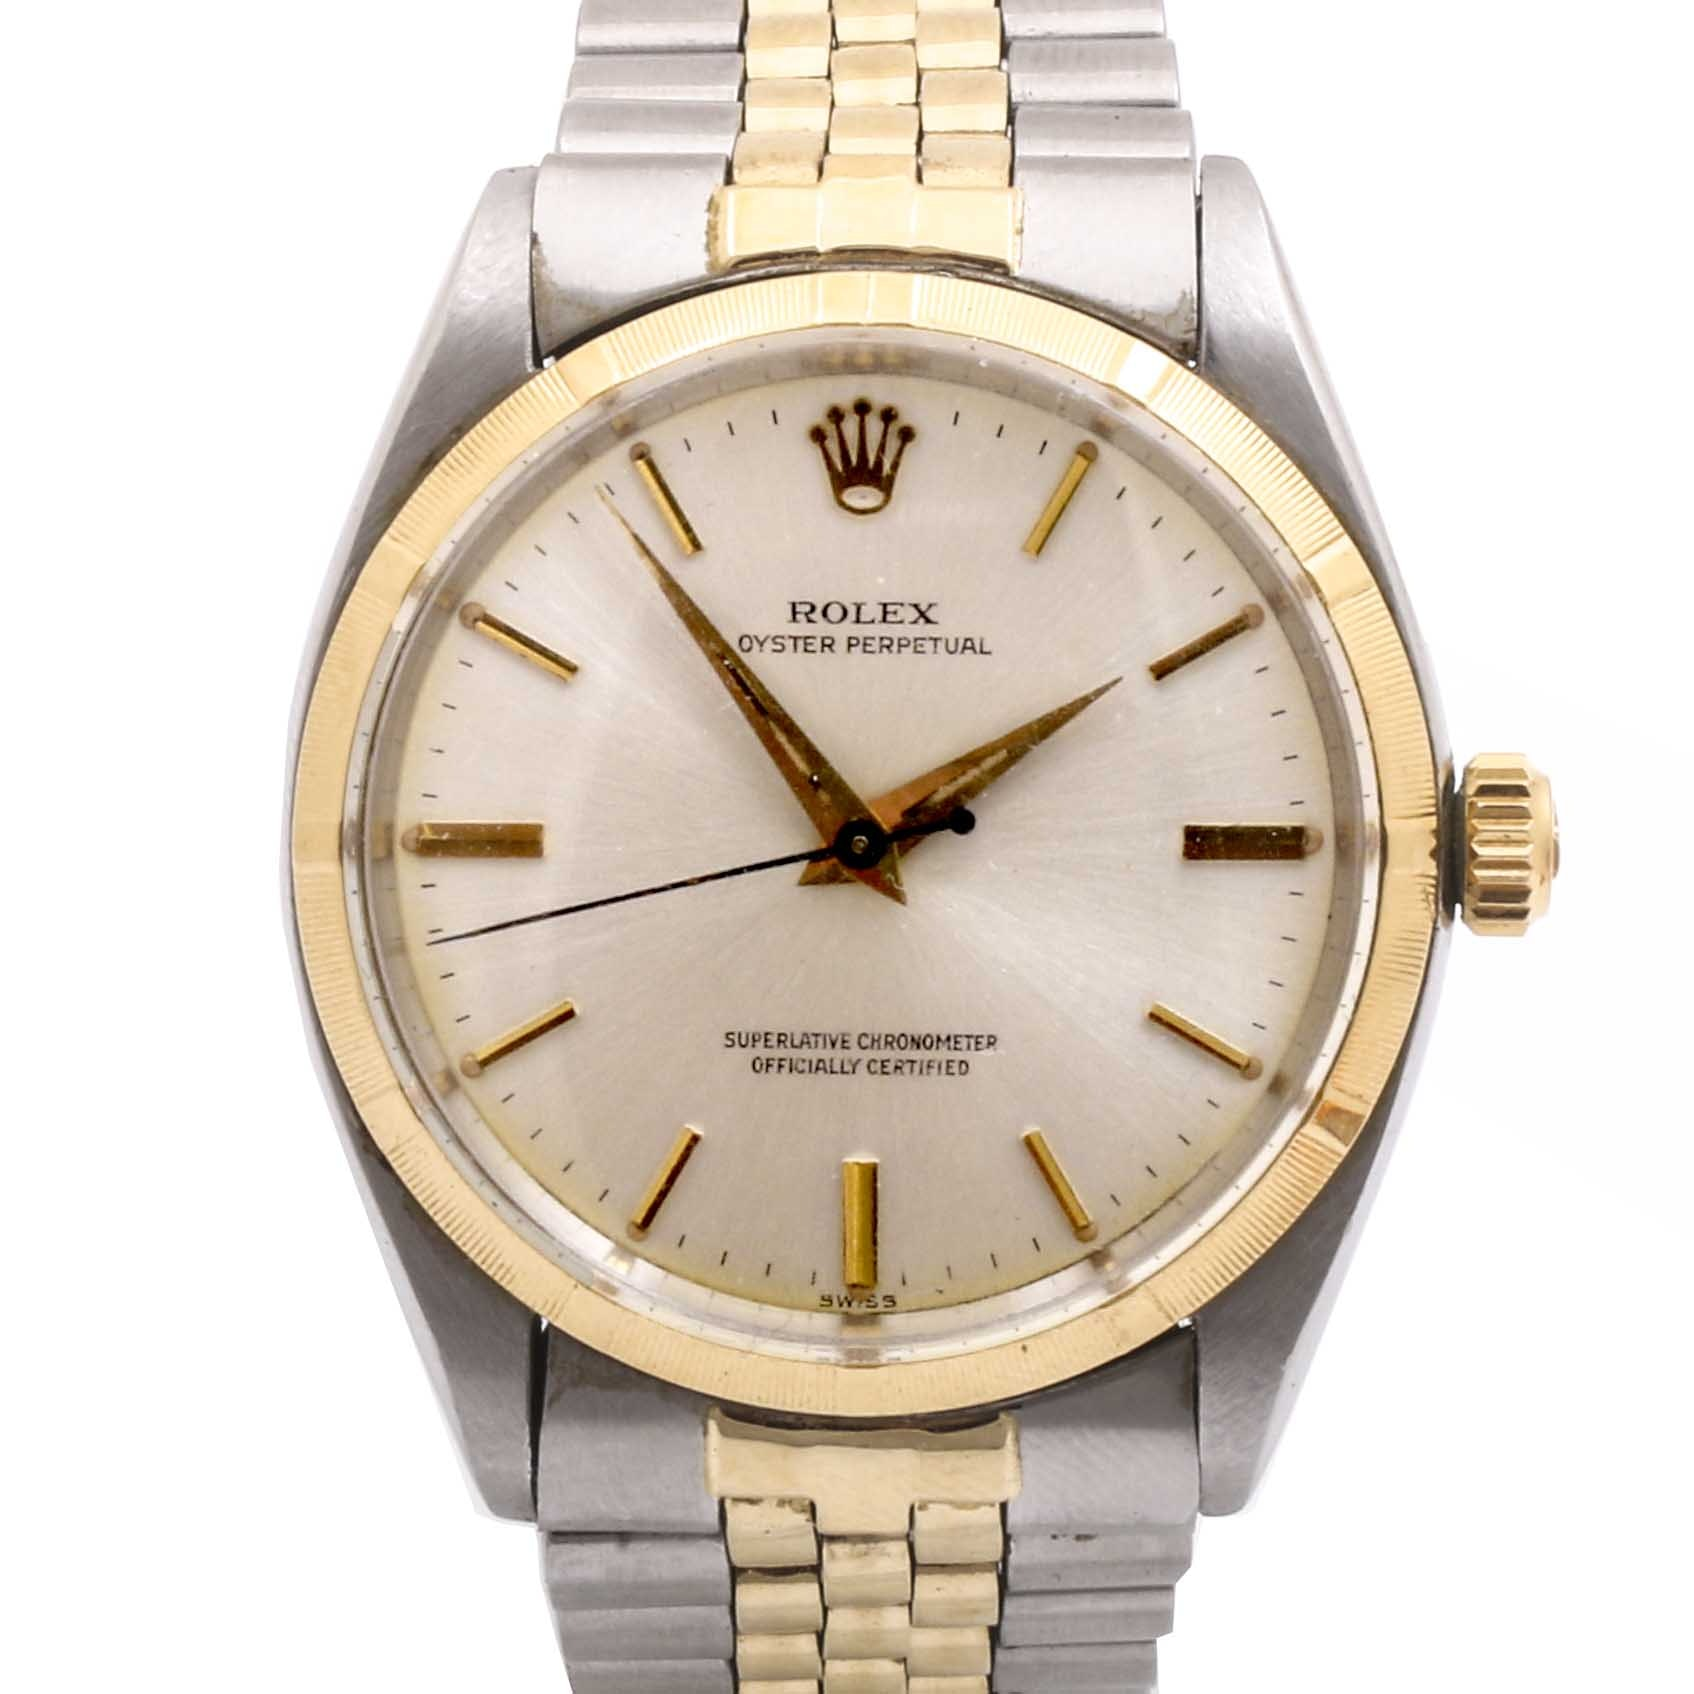 Rolex Oyster Perpetual Chronometer 14K Yellow Gold and Stainless Steel Wristwatch